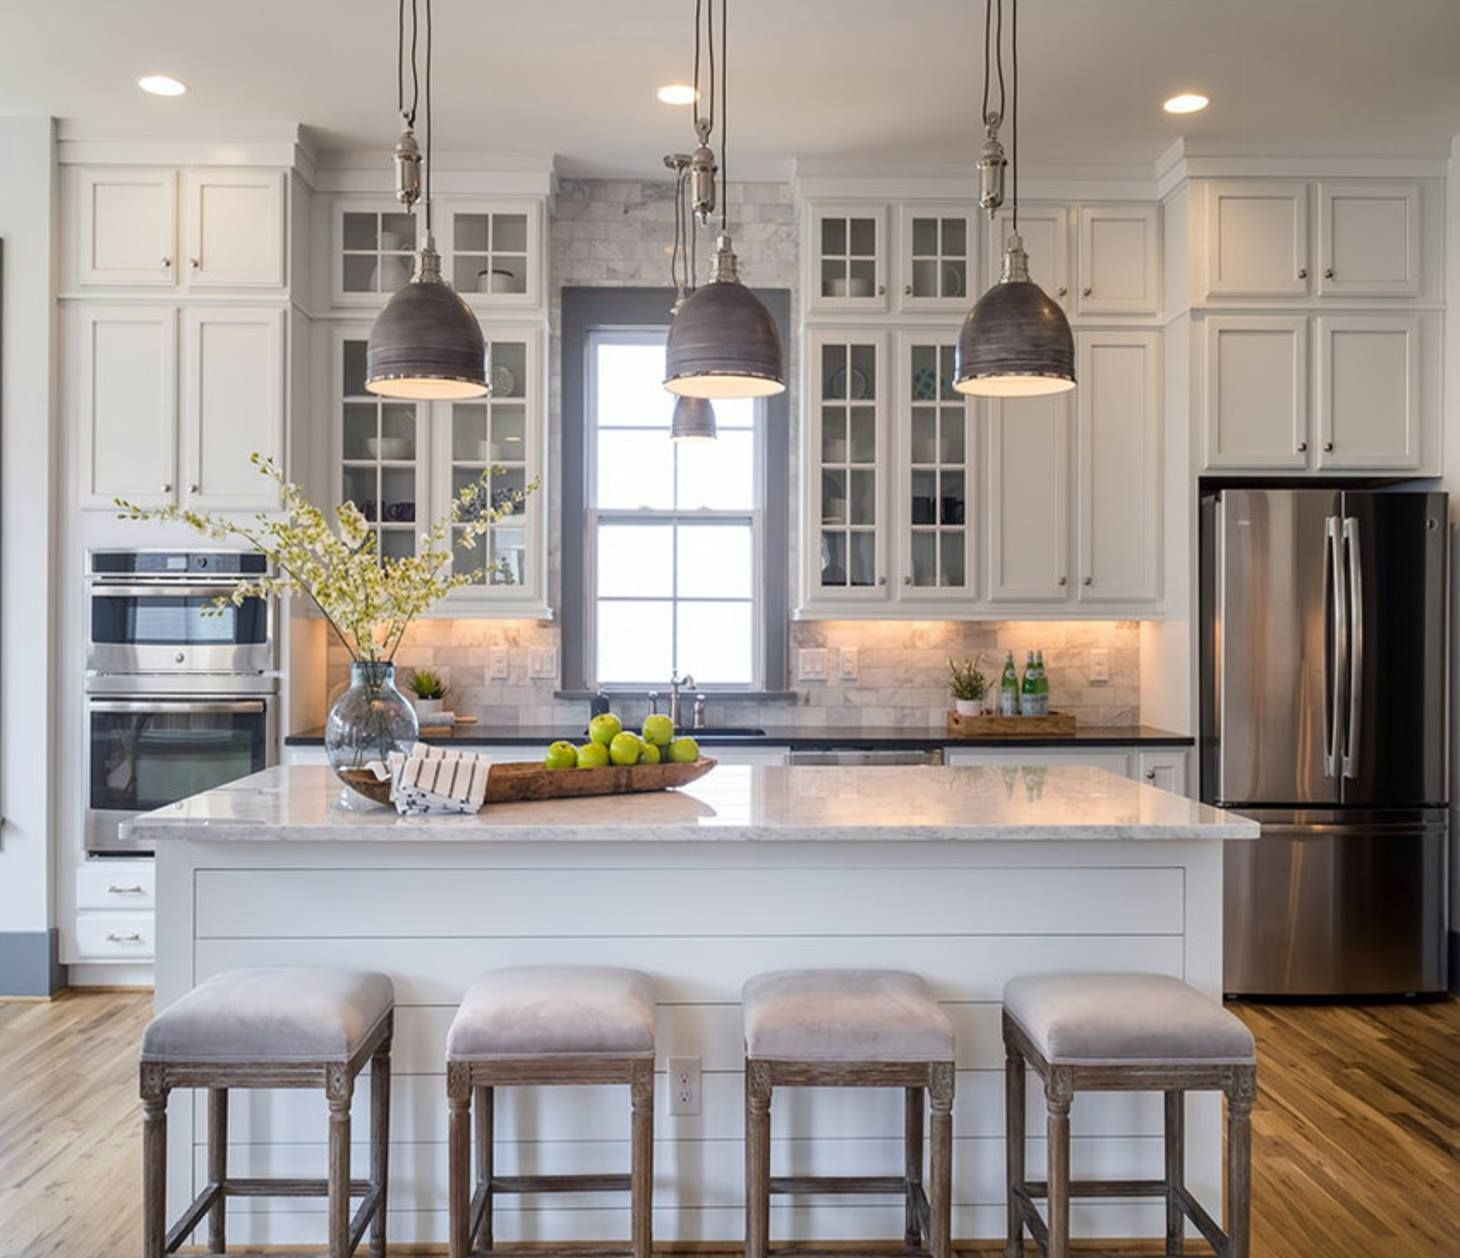 Best Trending On Houzz Is This Fresh Kitchen Via Saussy Burbank 400 x 300